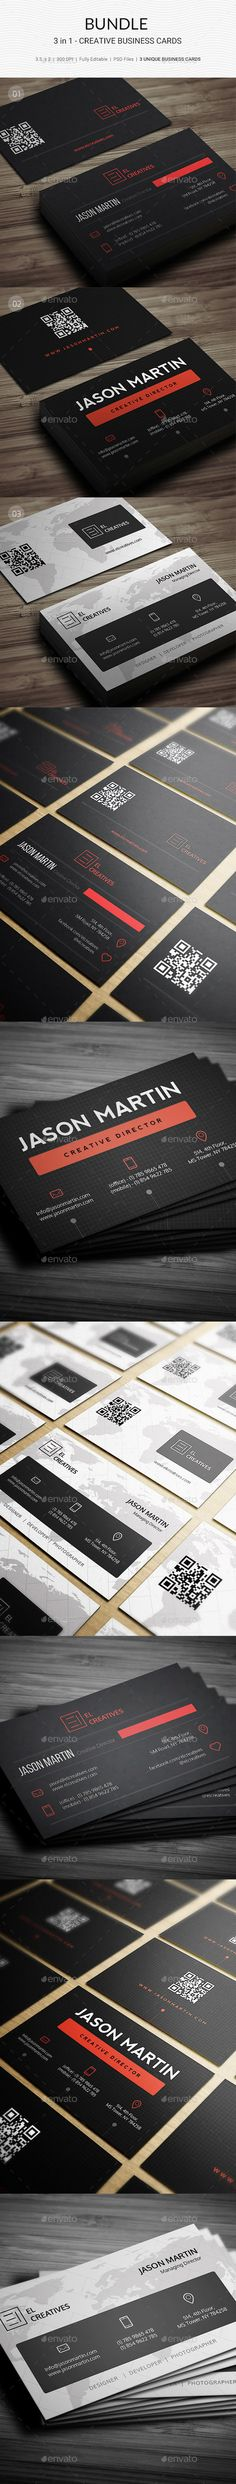 Bundle - 3 in 1 - Corporate Business Card Templates PSD - Download here: https://graphicriver.net/item/bundle-3-in-1-corporate-business-cards-174/21840668?ref=ksioks